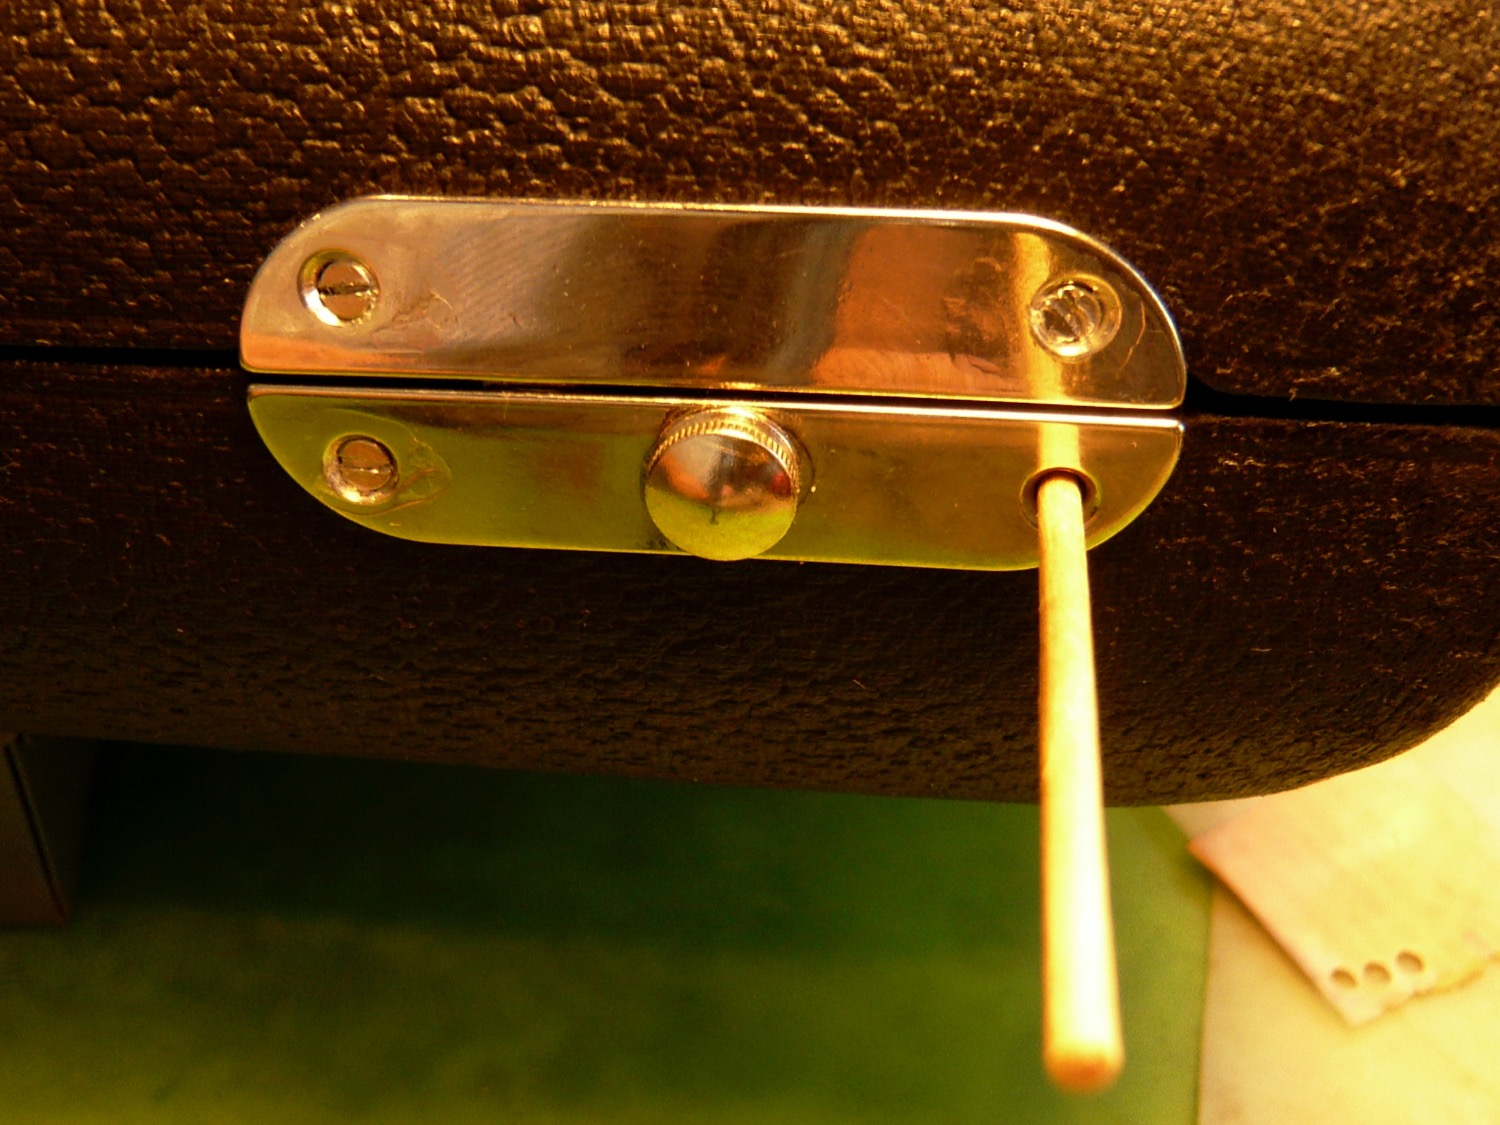 Take a toothpick or skewer and blunt the end. Then insert it into the hole as shown and break it off.